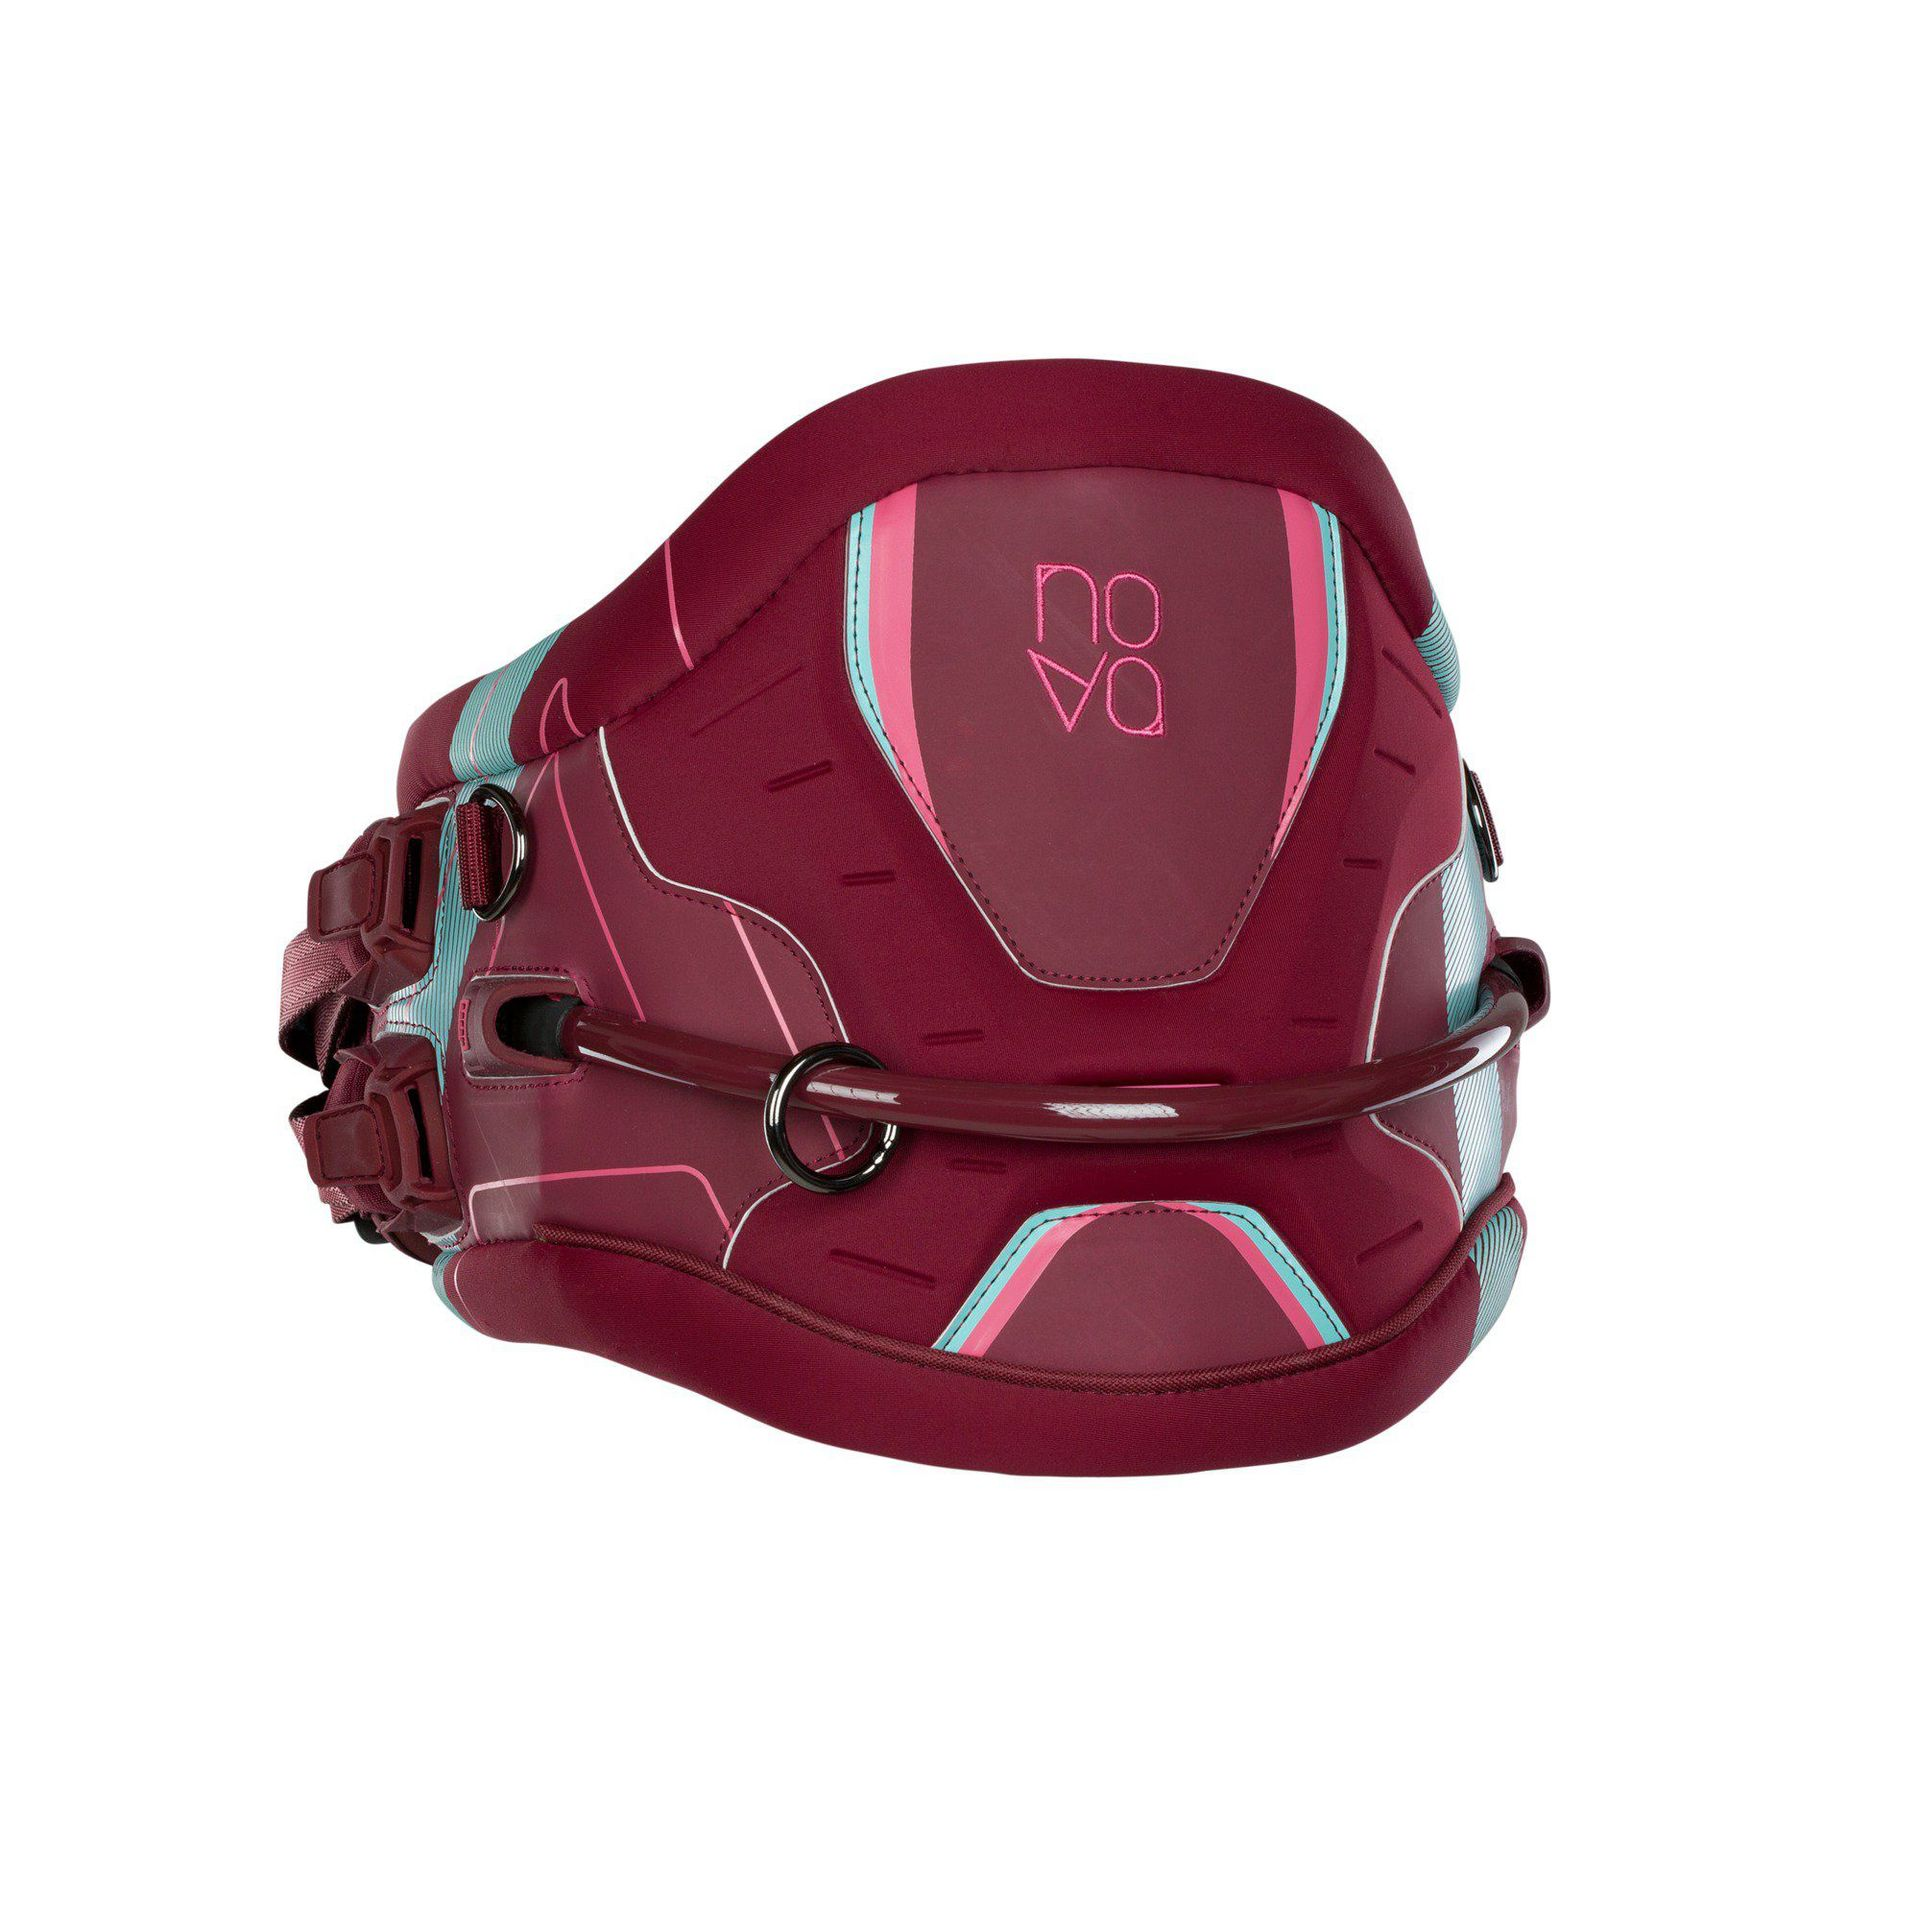 TRAPEZ KITESURFINGOWY ION NOVA 488063-4720 WINE RED|CAMBRIGE BLUE